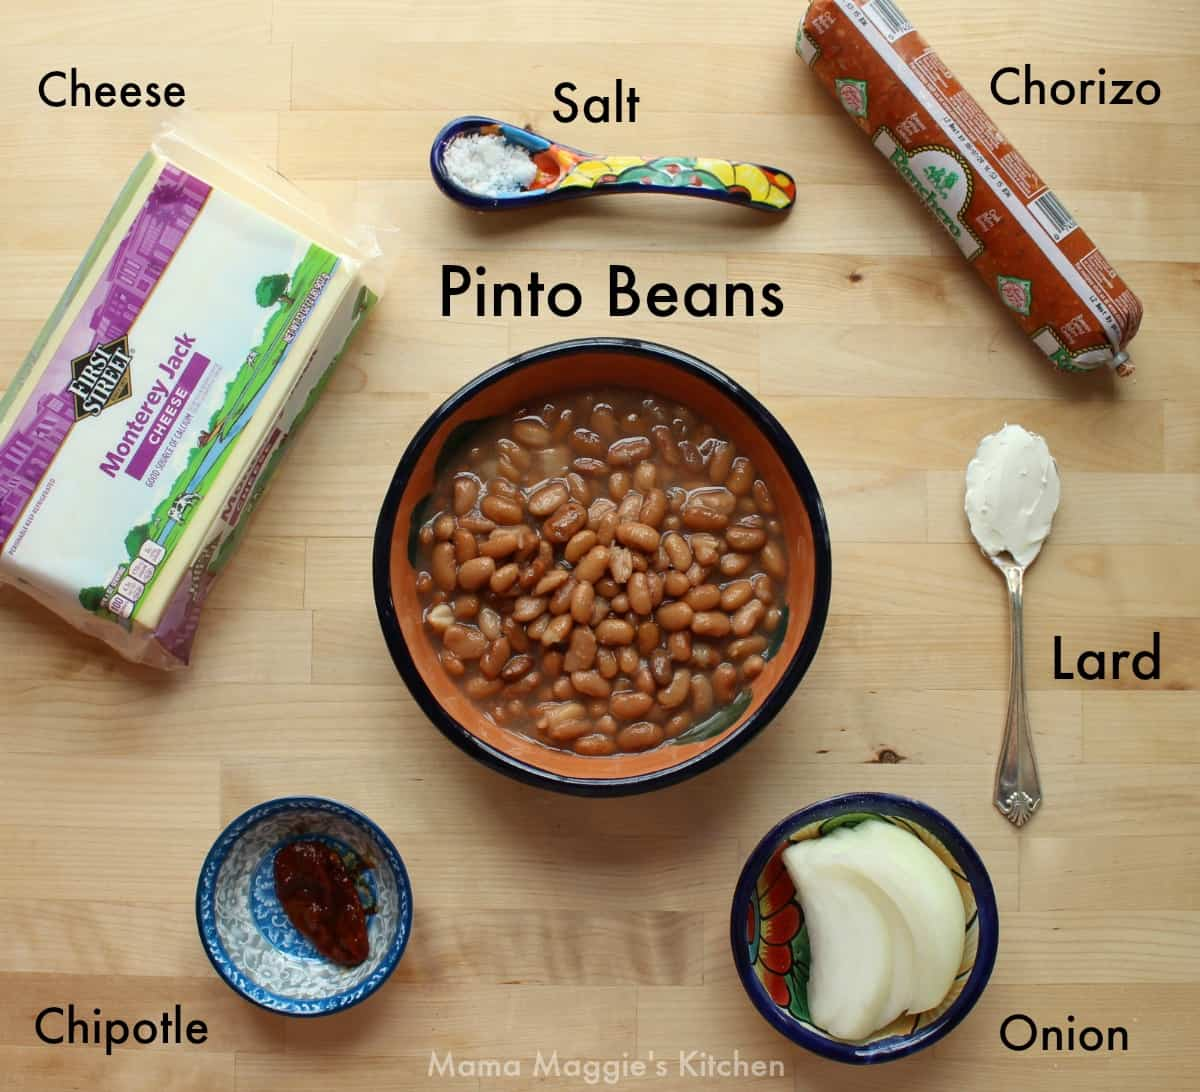 The ingredients for frijoles puercos on a wooden surface.